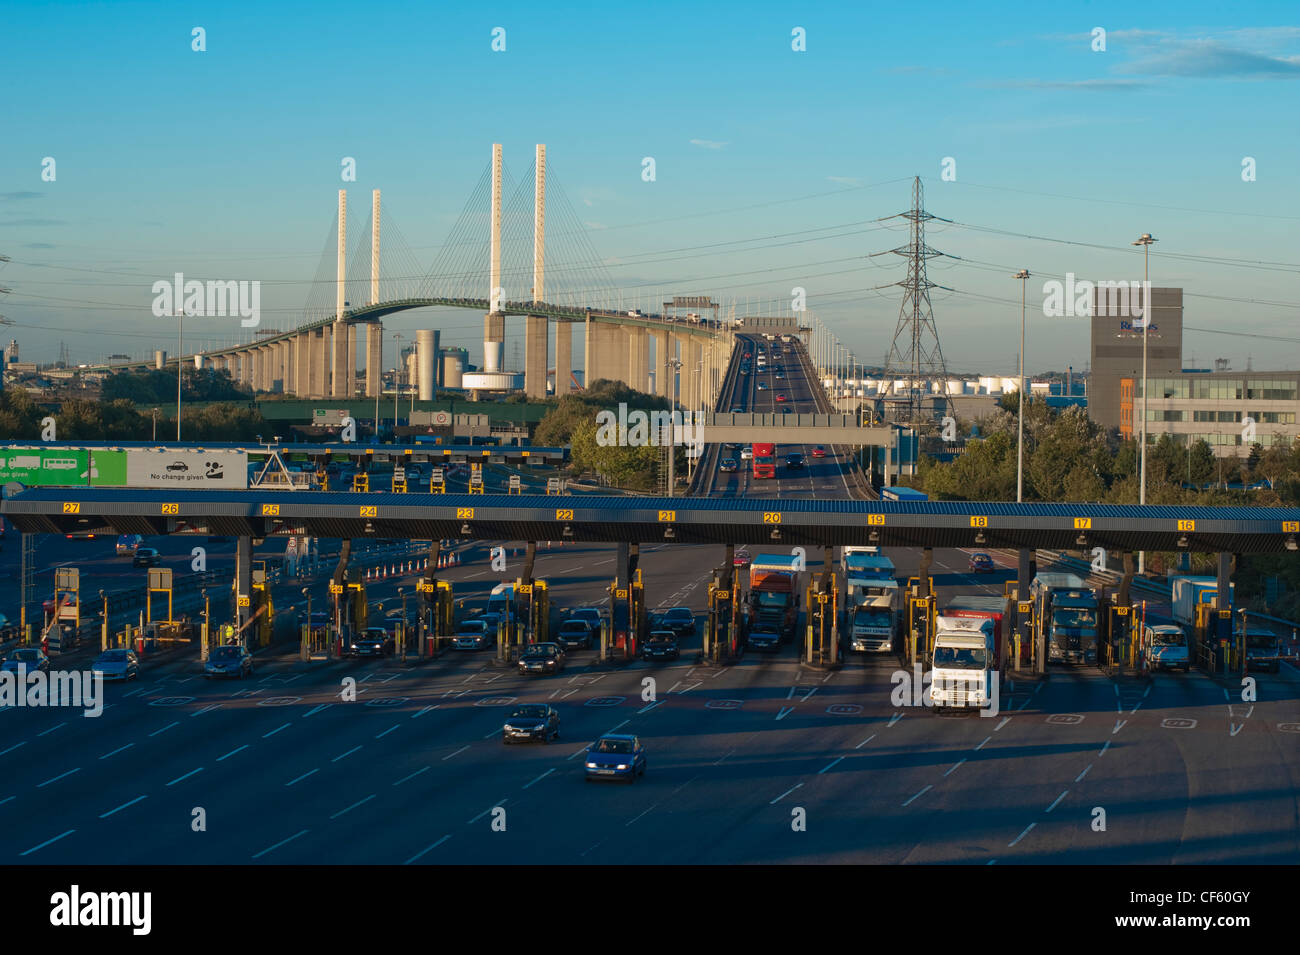 Traffic pulling away from the toll booths of the Dartford River crossing to enter Kent. - Stock Image